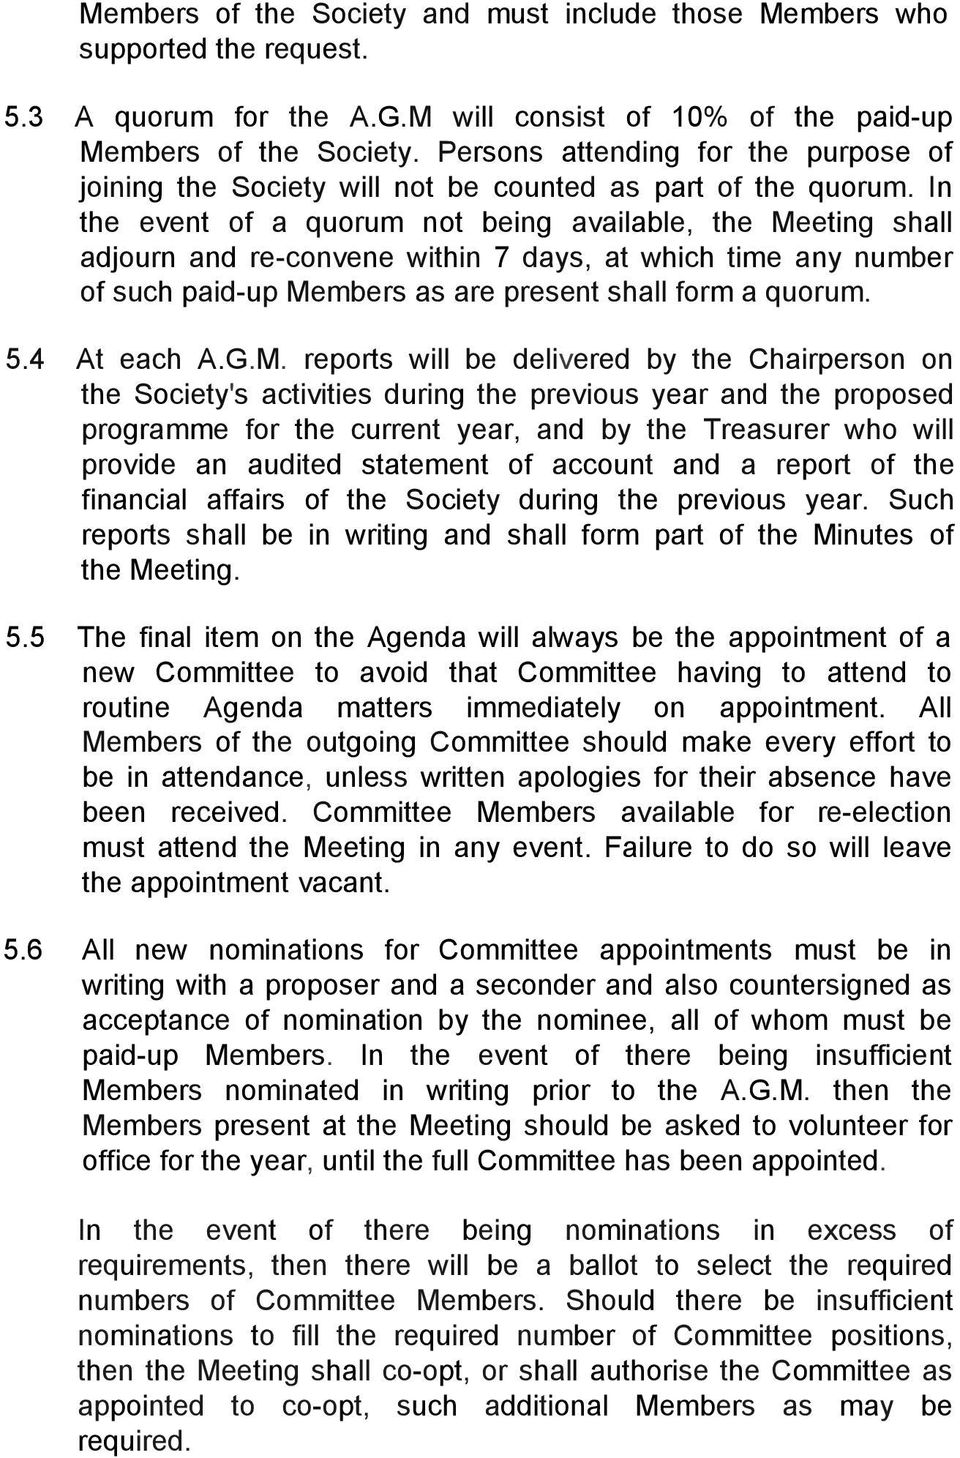 In the event of a quorum not being available, the Meeting shall adjourn and re-convene within 7 days, at which time any number of such paid-up Members as are present shall form a quorum. 5.